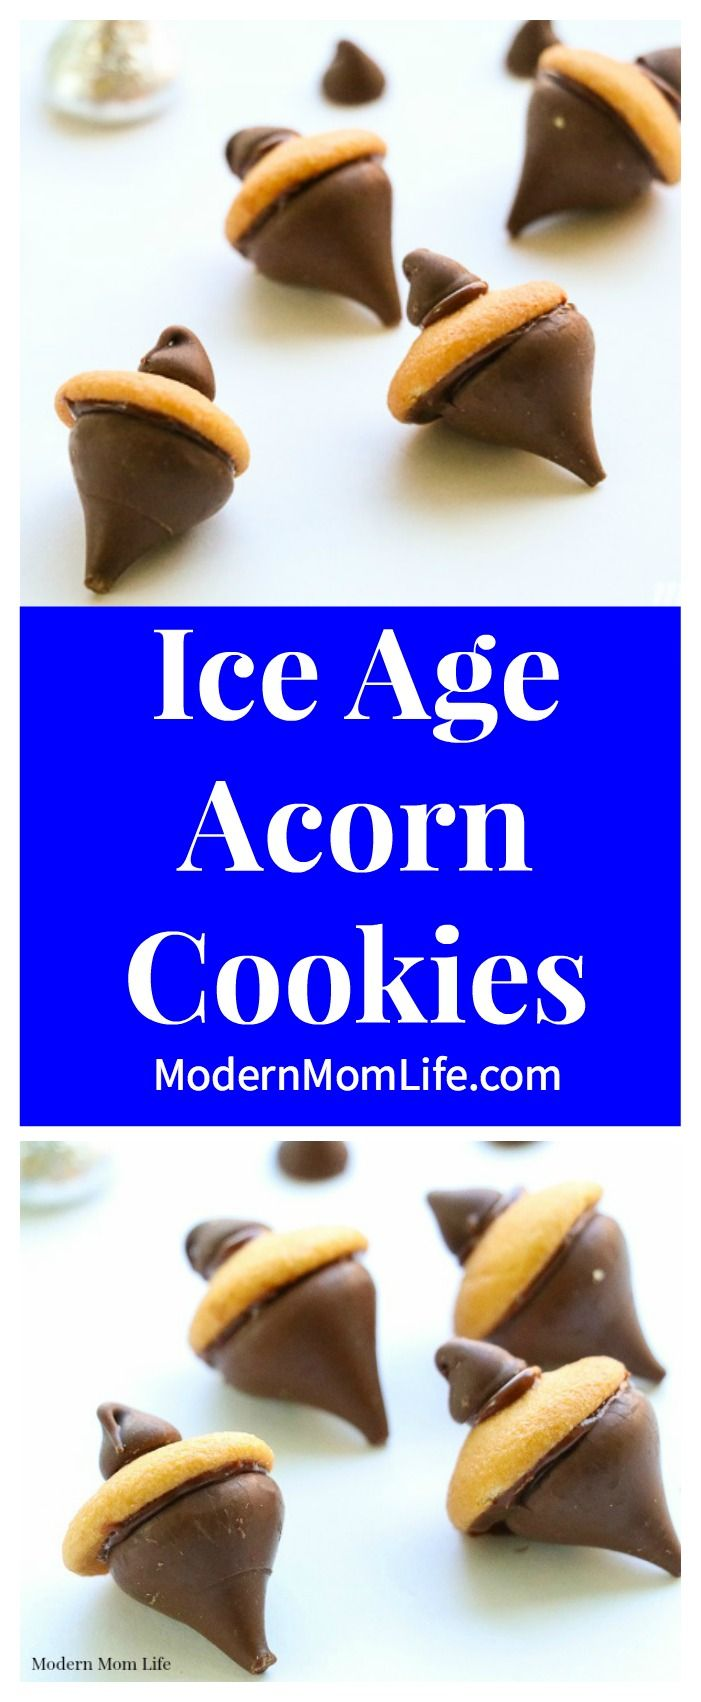 How to host an epic Ice Age party complete with acorn cookies and space activities. #ScratinSpace #IceAge #ad via @amodernmomlife